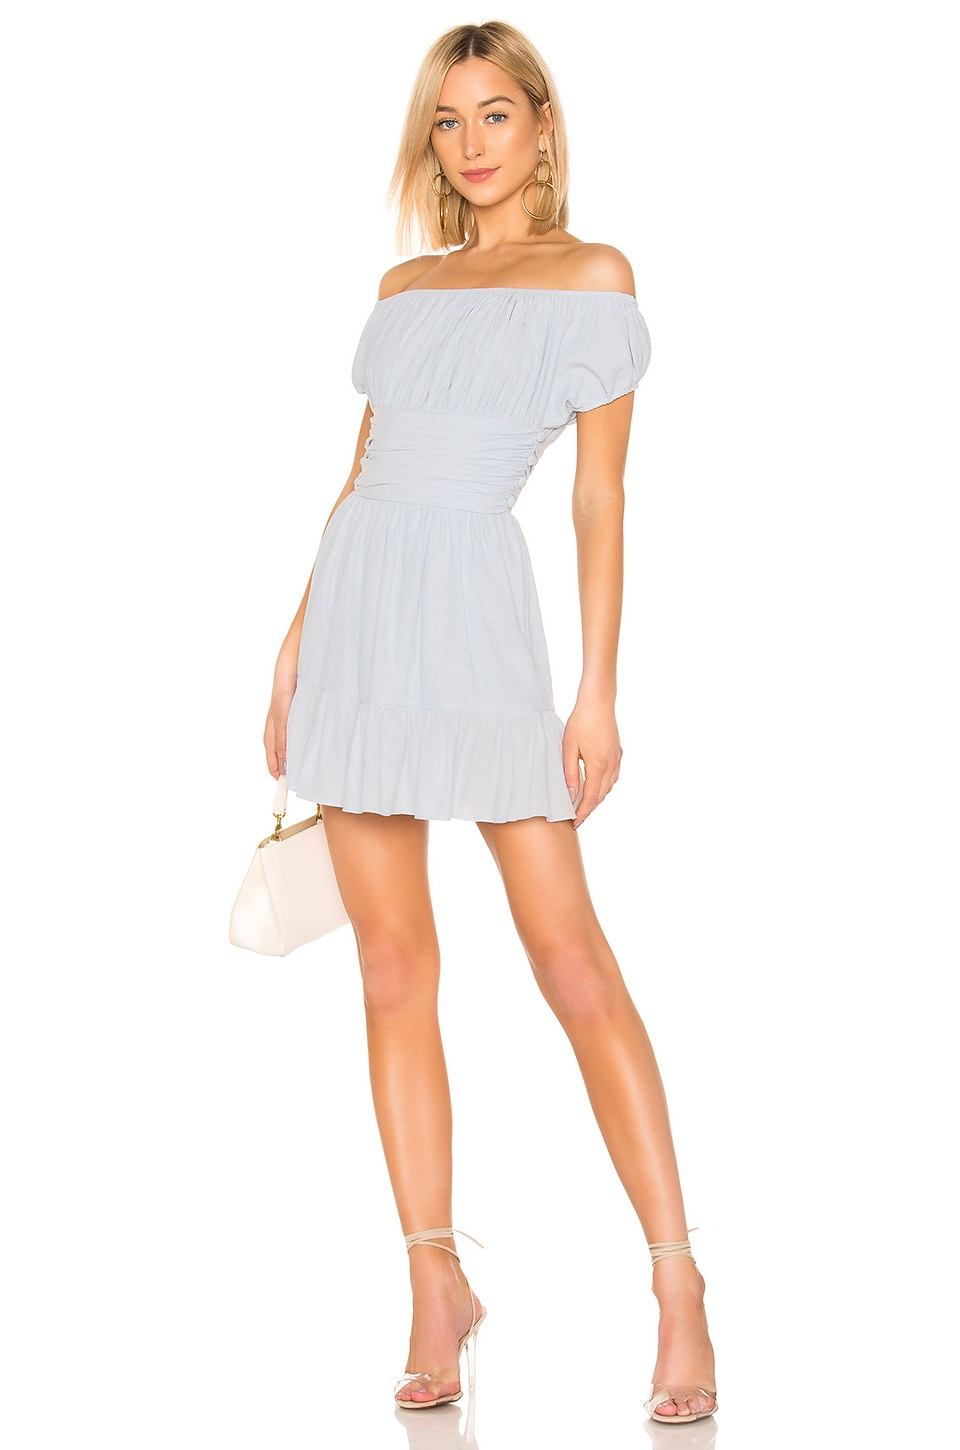 House of Harlow x Revolve 1960 Daphne Dress